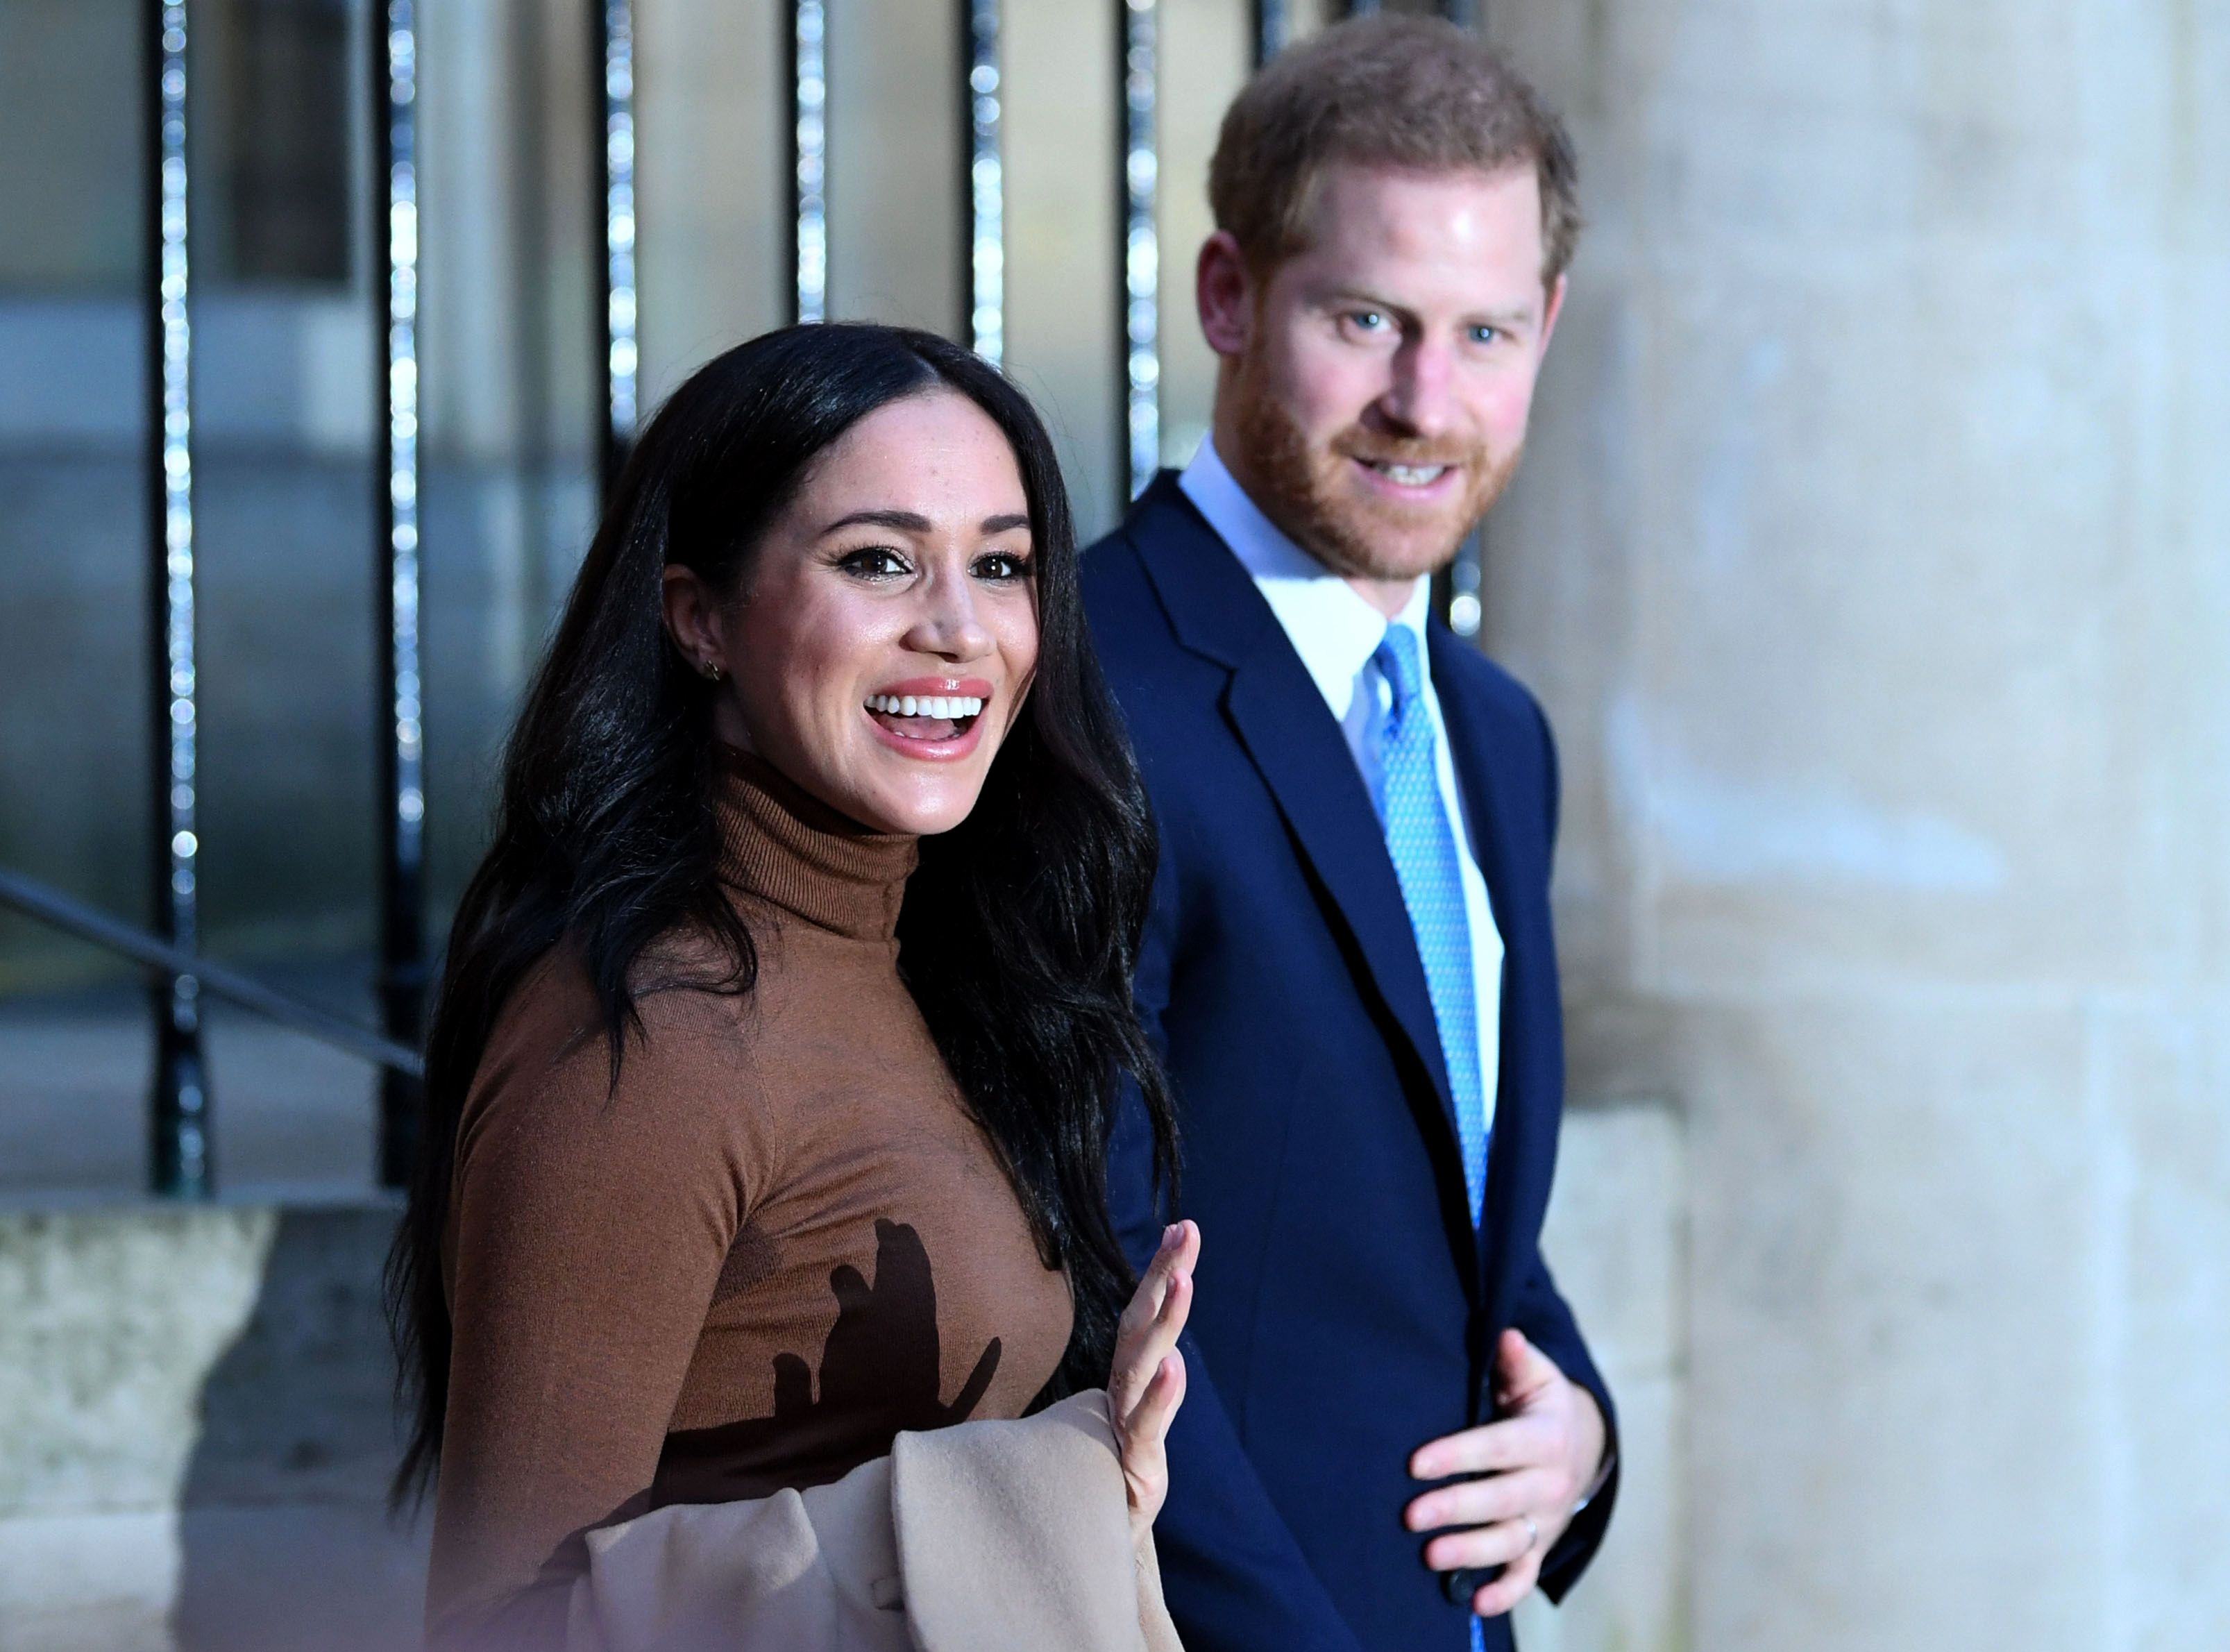 Prince Harry And Meghan Markle Will No Longer Use Their 'Royal Highness' Titles, Buckingham Palace Says